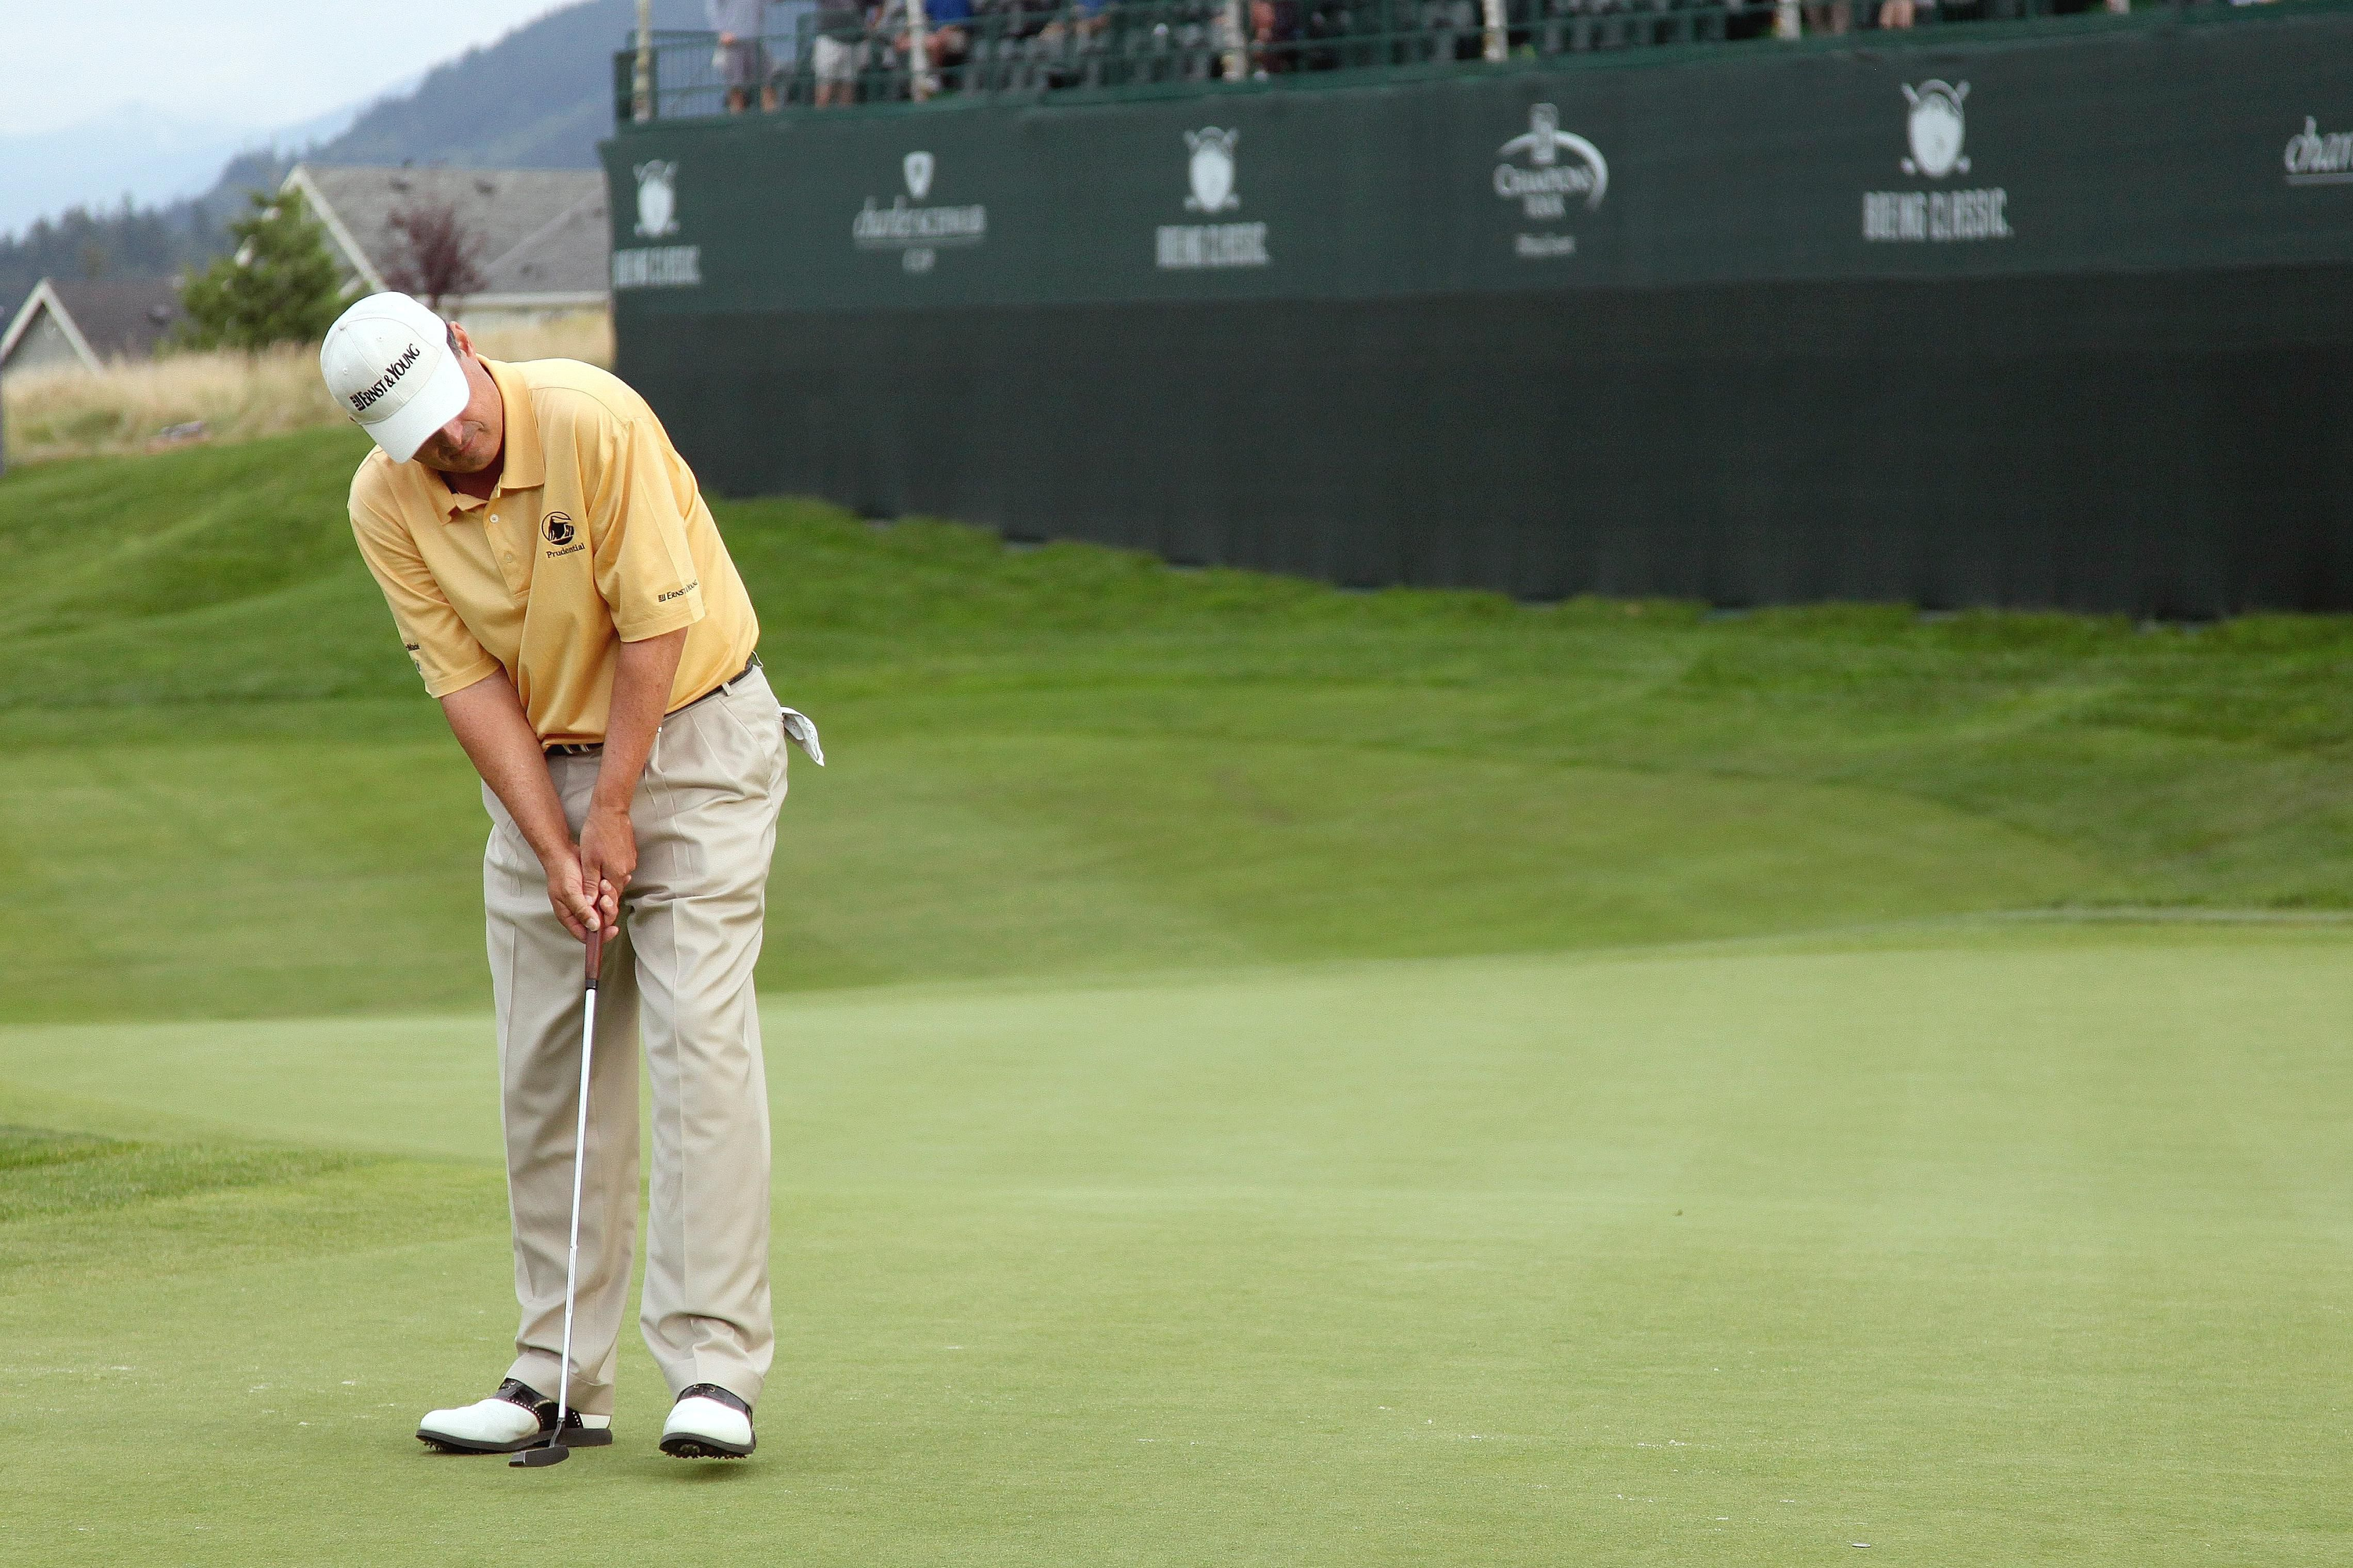 17 of the Best Golfer Nicknames of All-Time